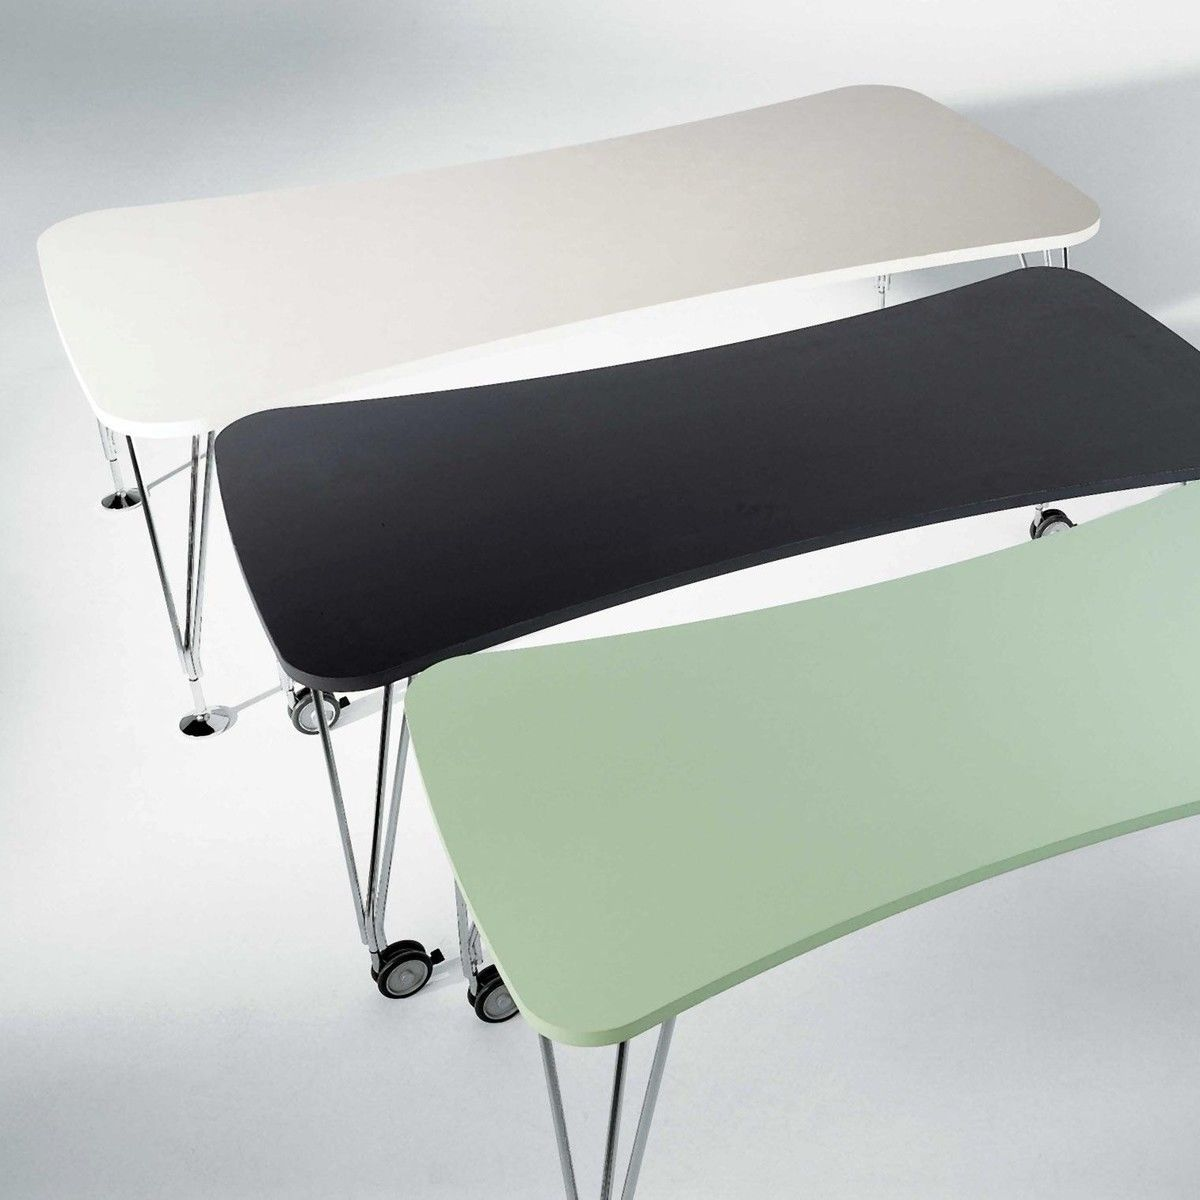 Max table 160x80cm kartell for Table kartell